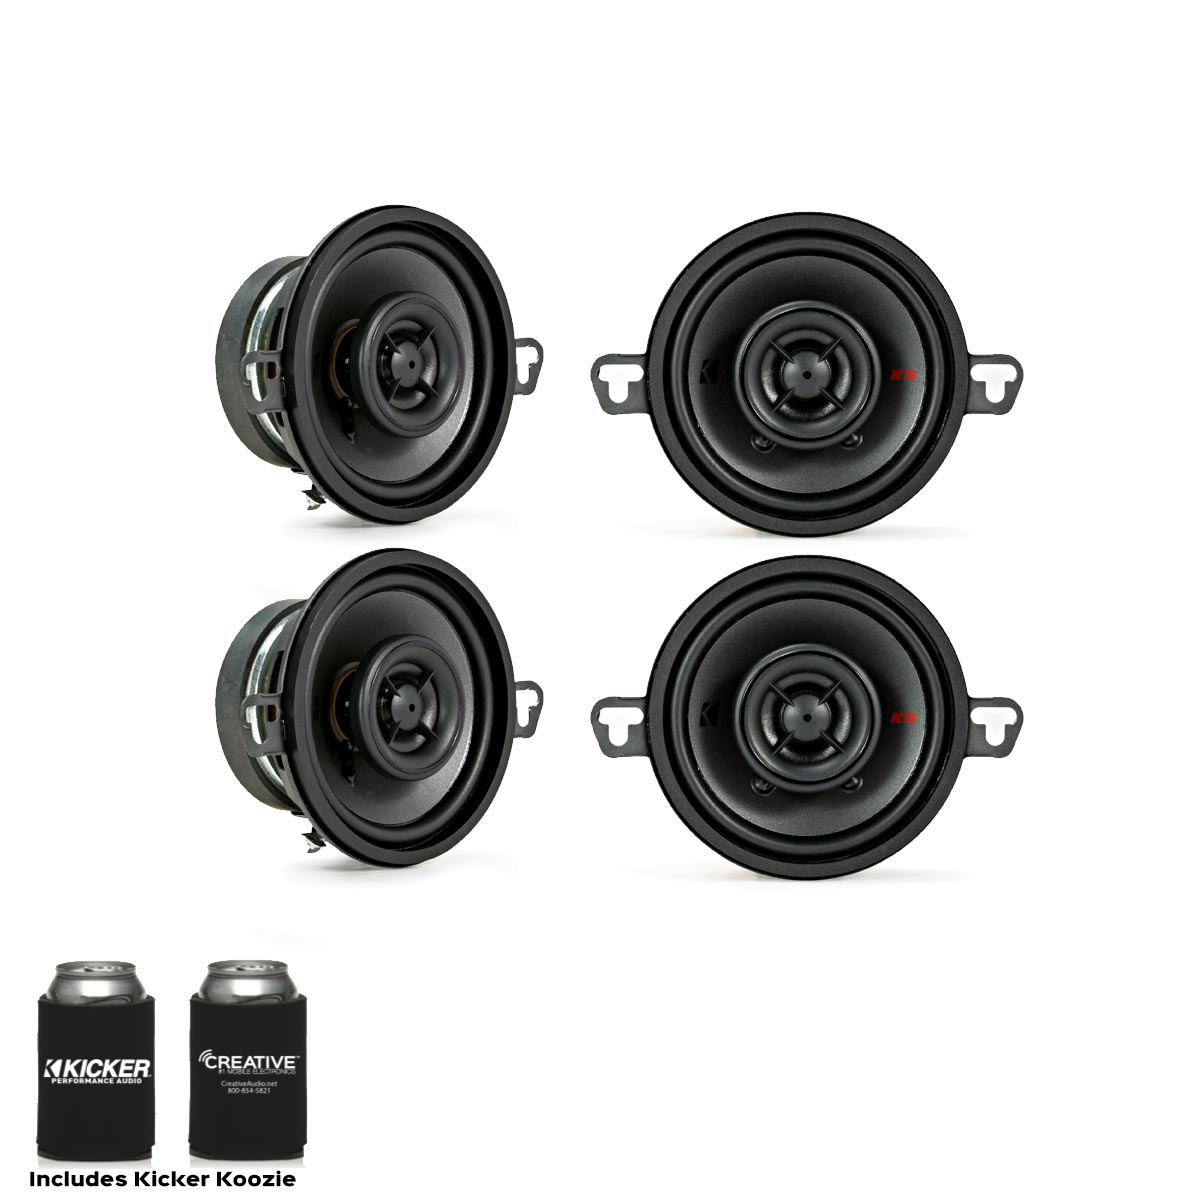 Kicker Speaker Bundle - Two pairs of Kicker 3.5 Inch KS-Series Speakers 44KSC3504